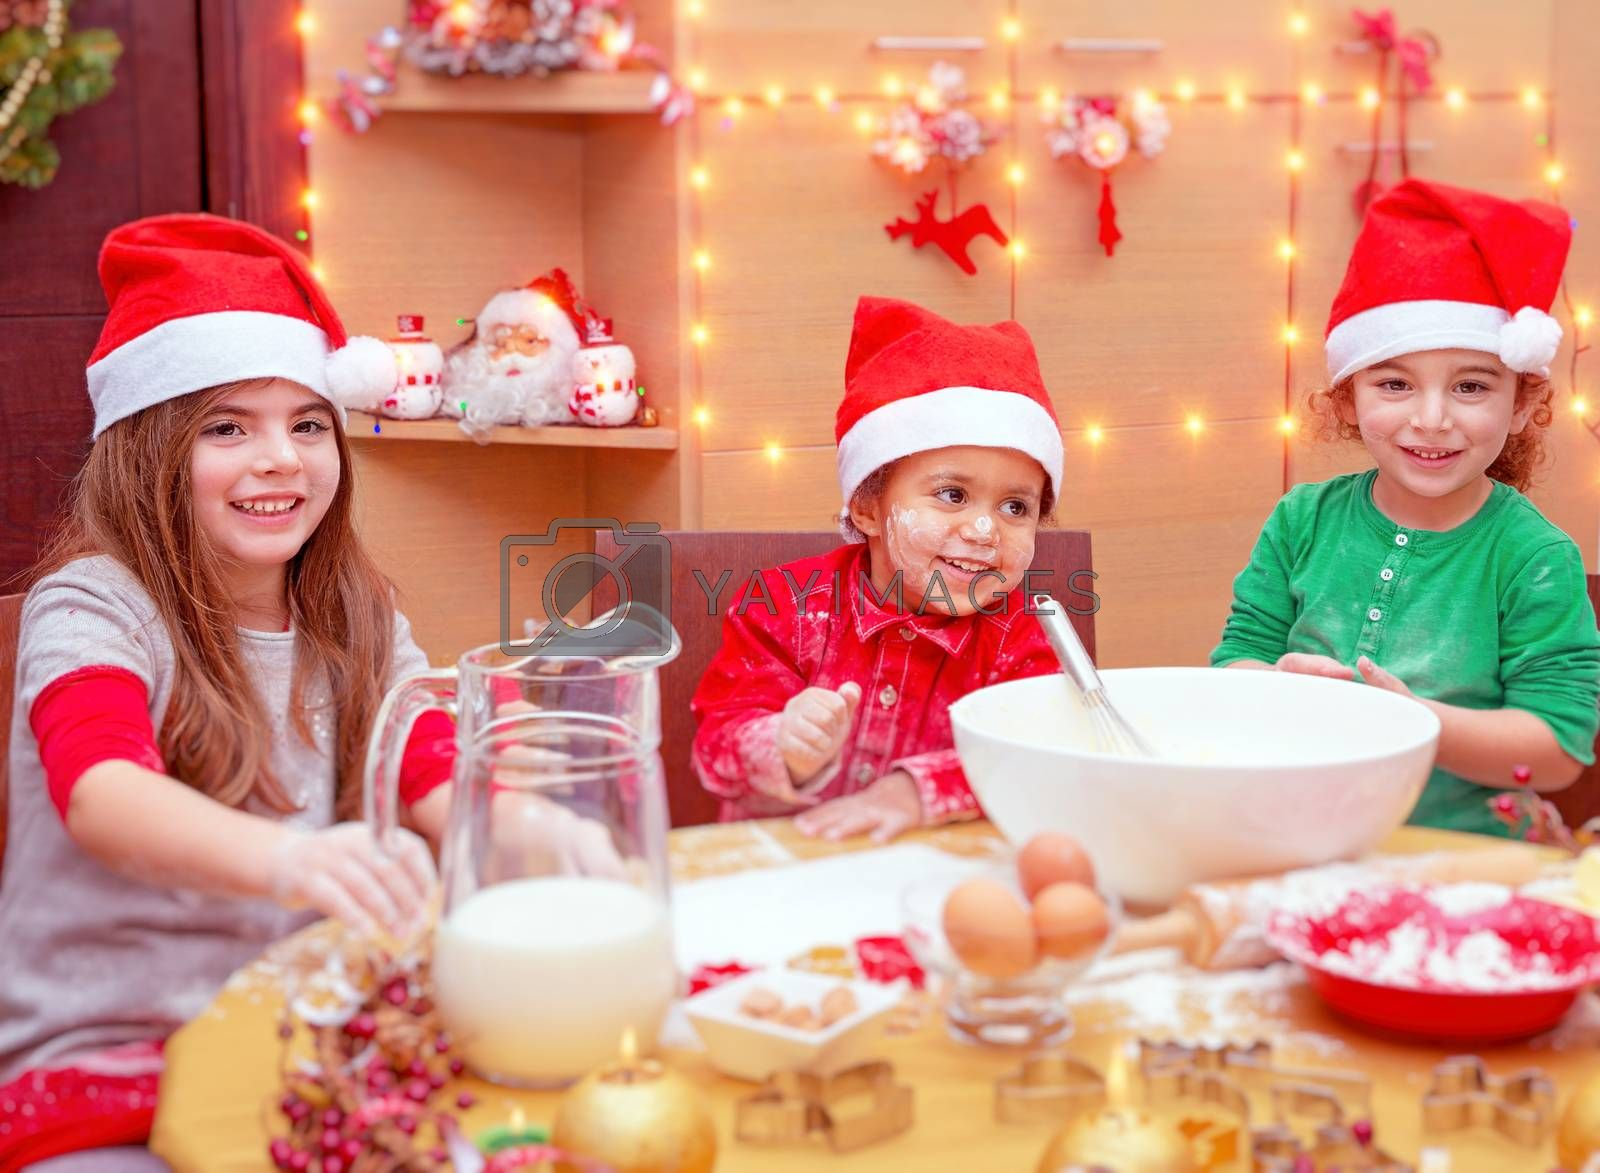 Happy children making Christmas cookies at home, three cute little kids wearing red Santa hats preparing festive tasty sweets, traditional celebration of winter holidays